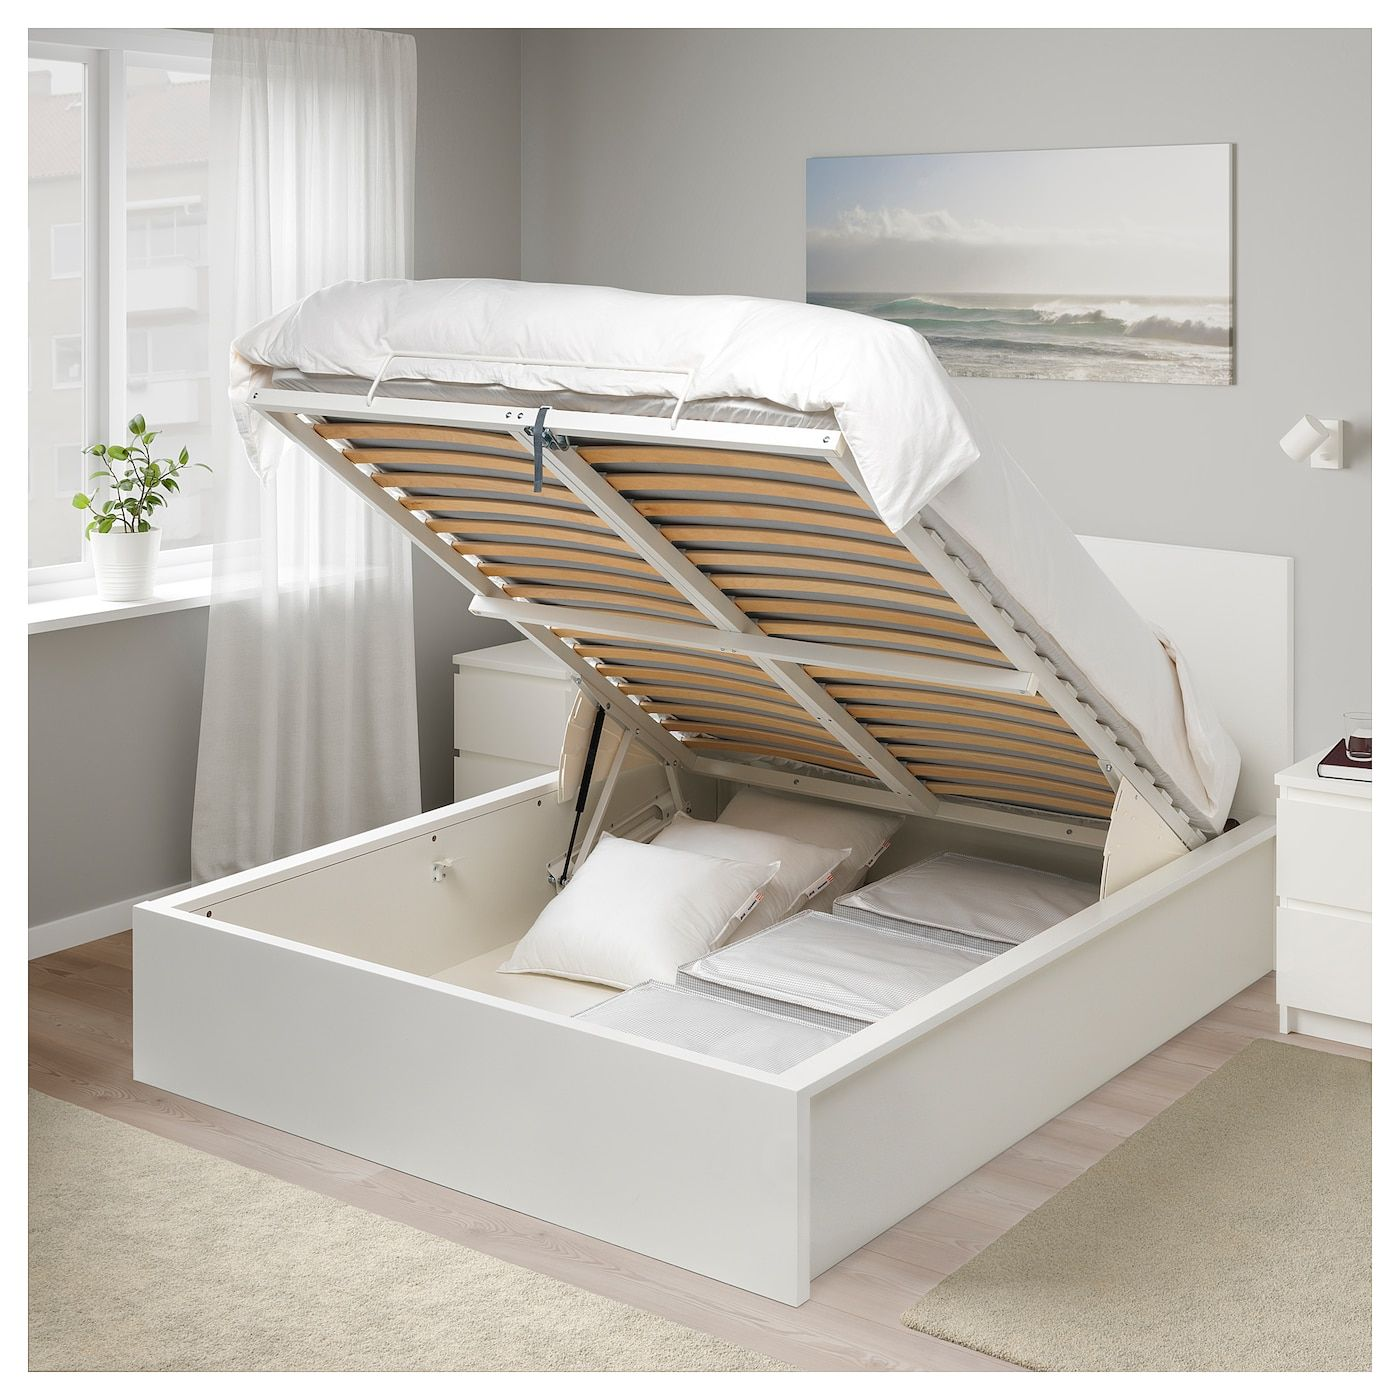 Malm Storage Bed White Queen Ikea Malm Bed Bed Frame With Storage Ikea Malm Bed